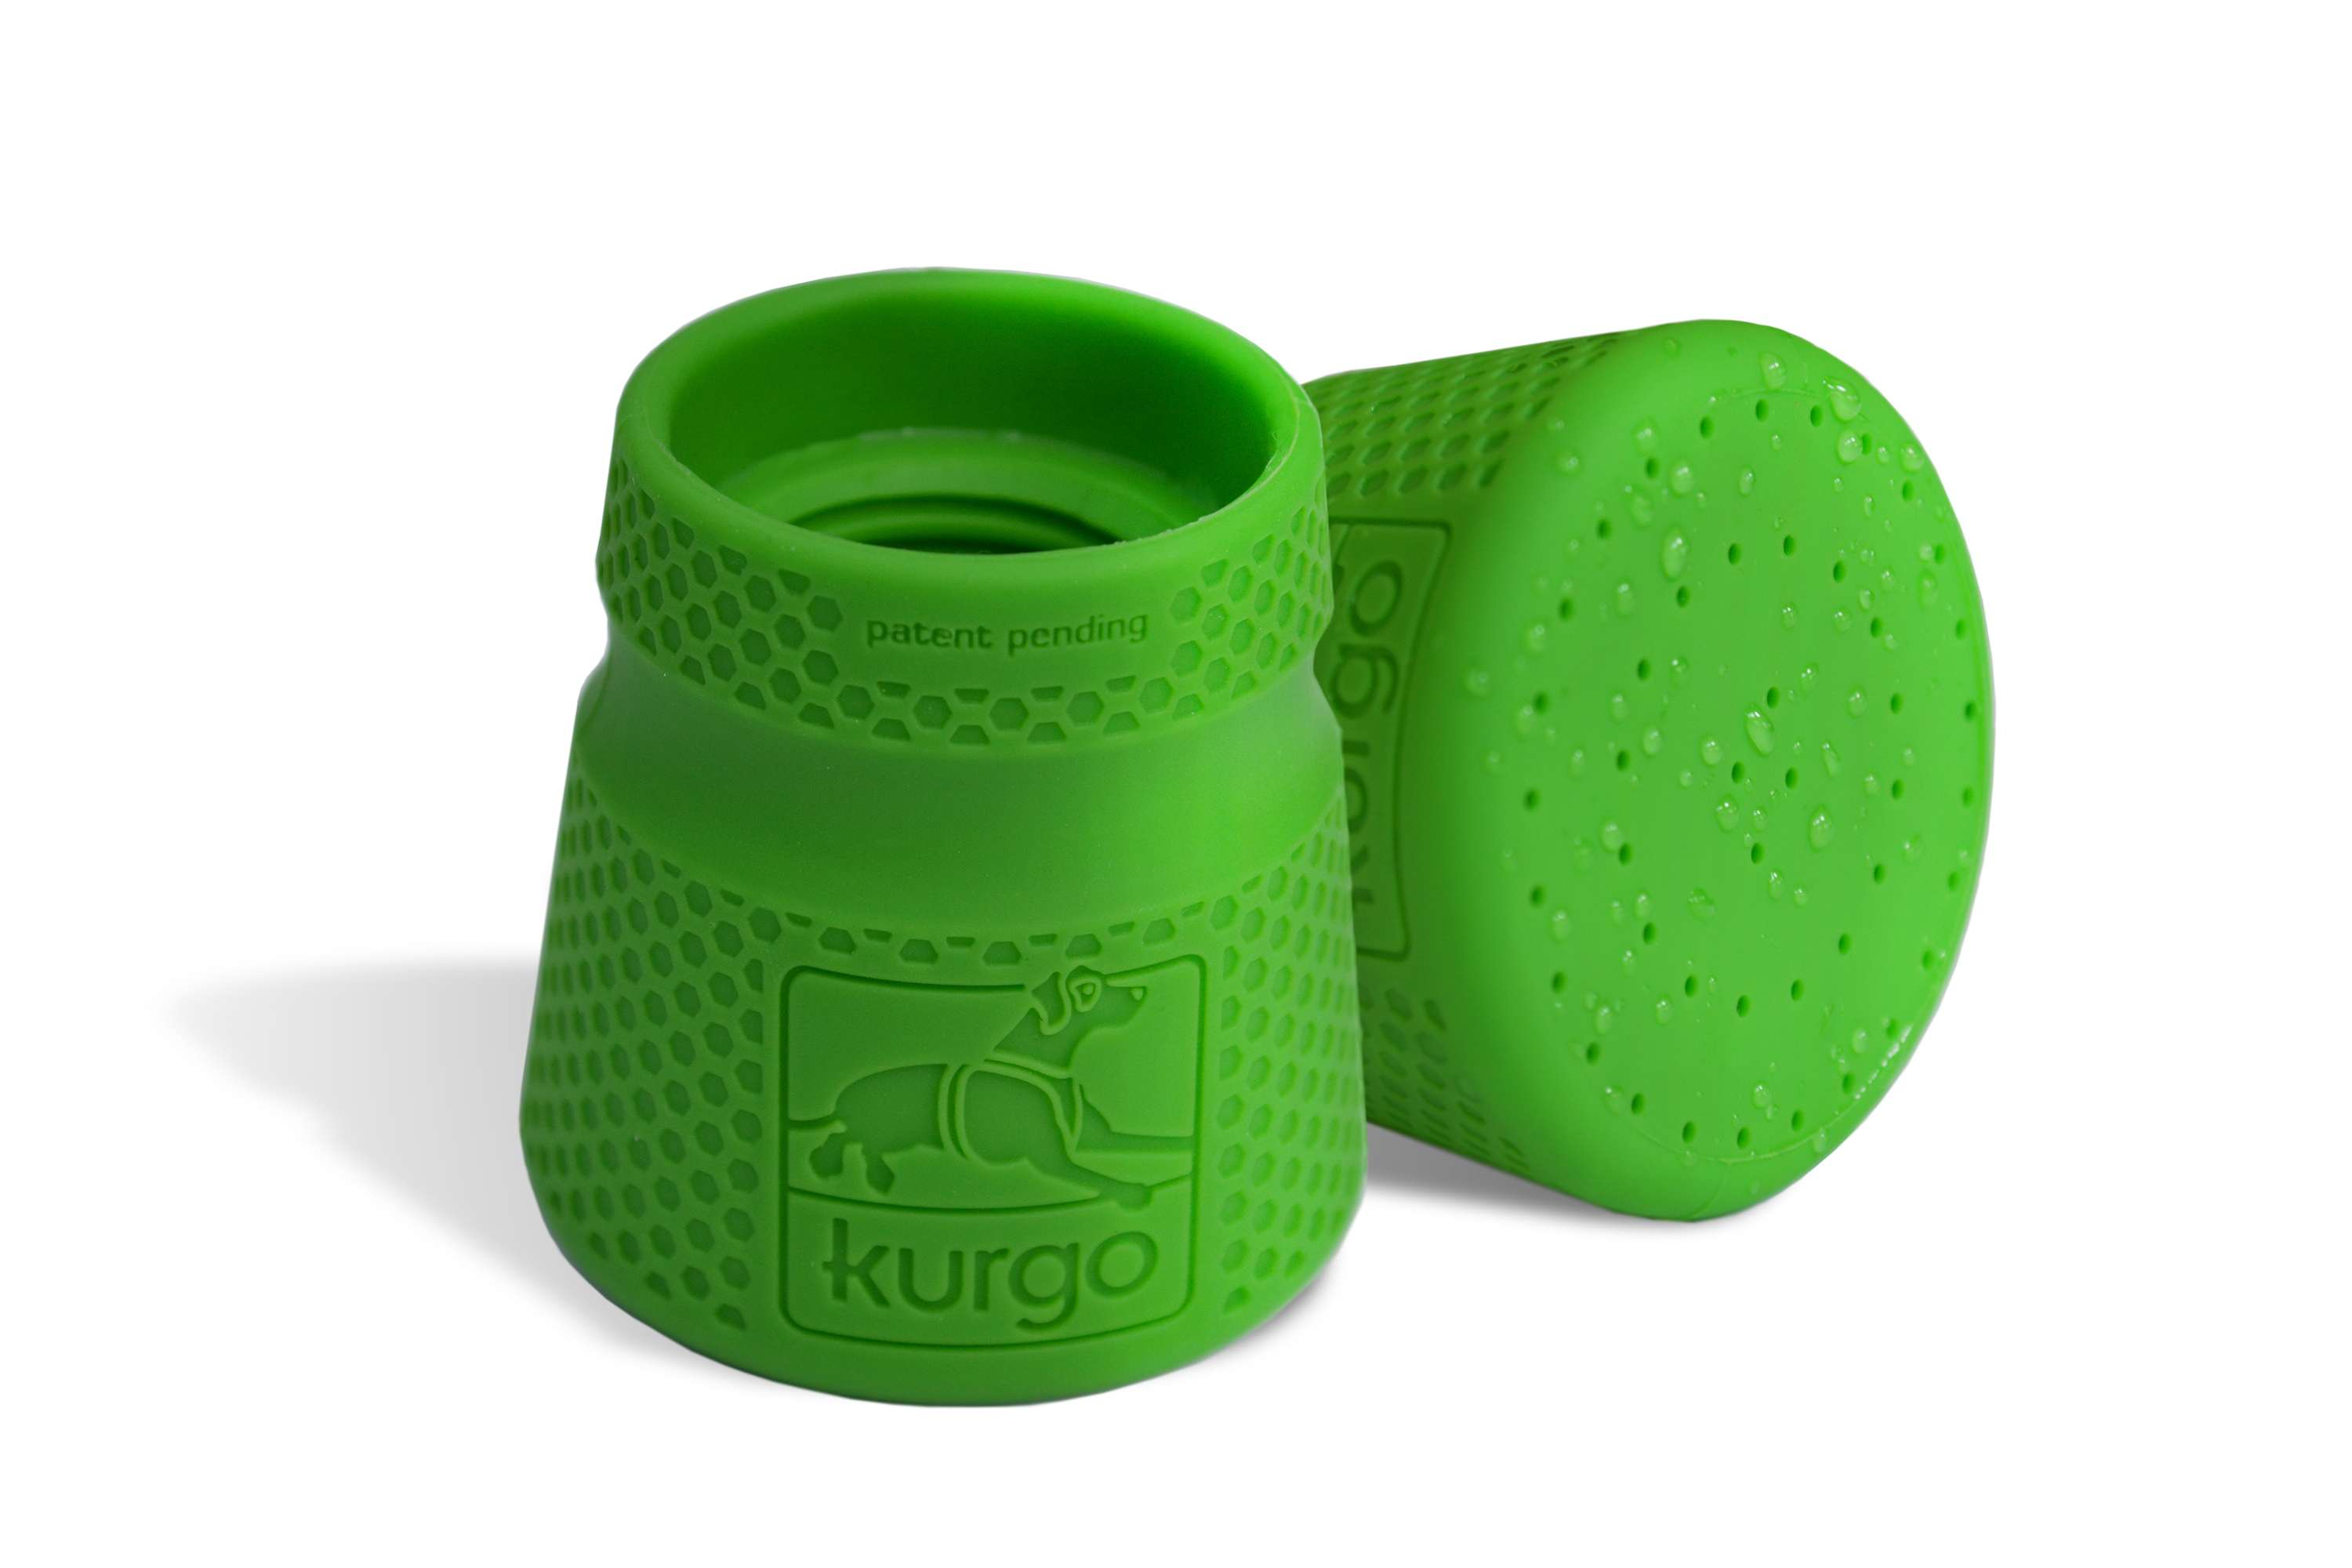 Portable Pet Shower - Kurgo Mud Dog Travel Shower front and side